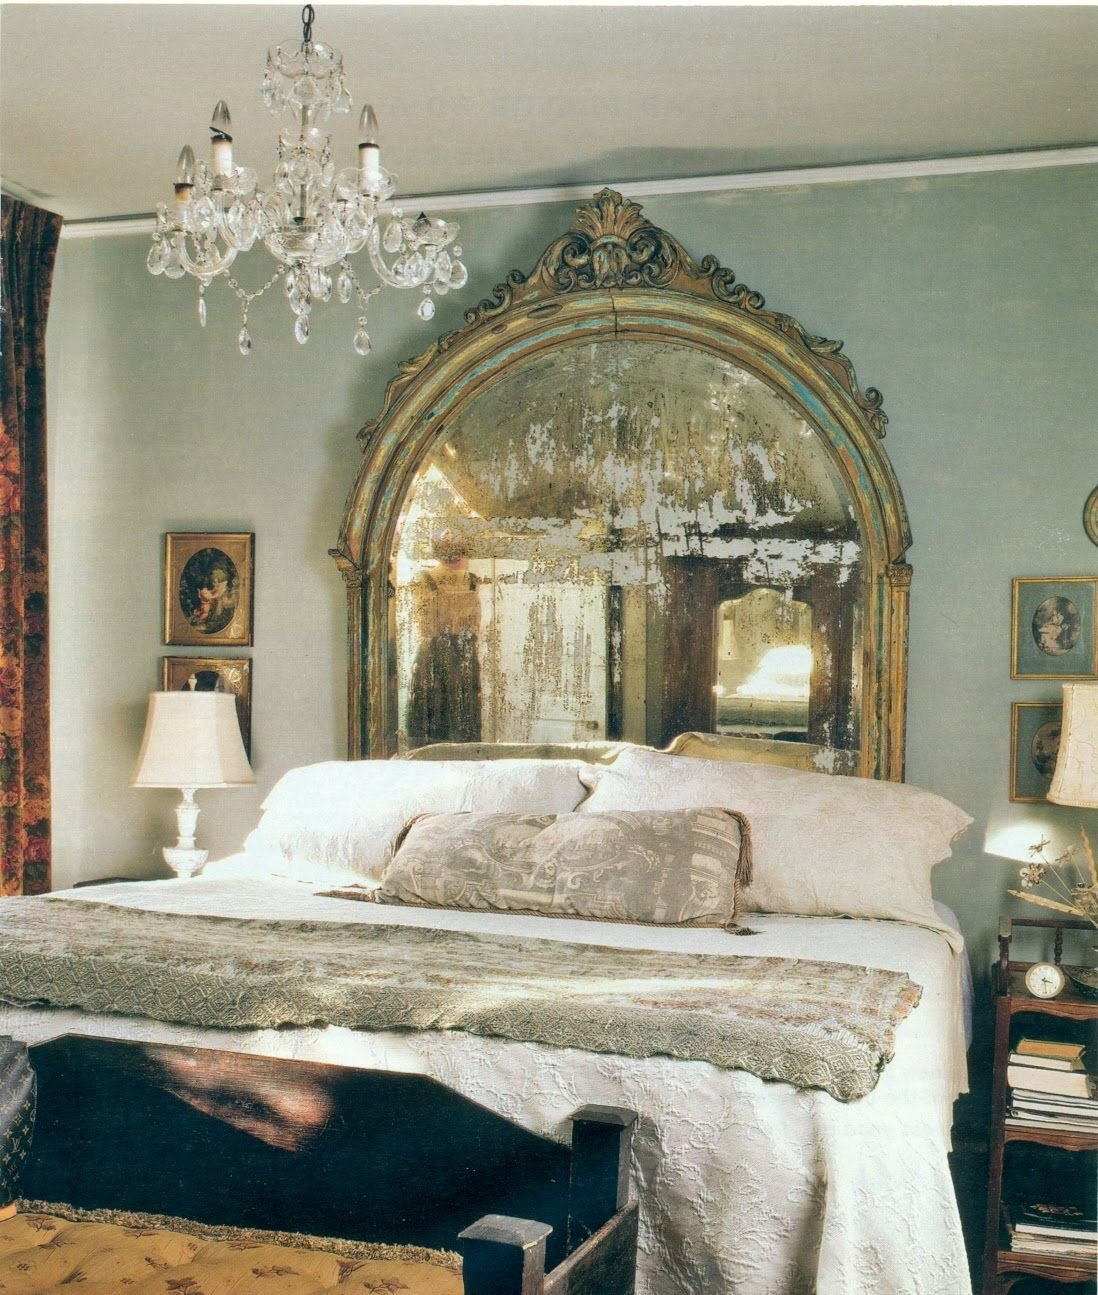 Grey and Turquoise Bedroom Ideas Beautiful Just A Wonderful Faded Mirror Behind the Bed Grey Blue